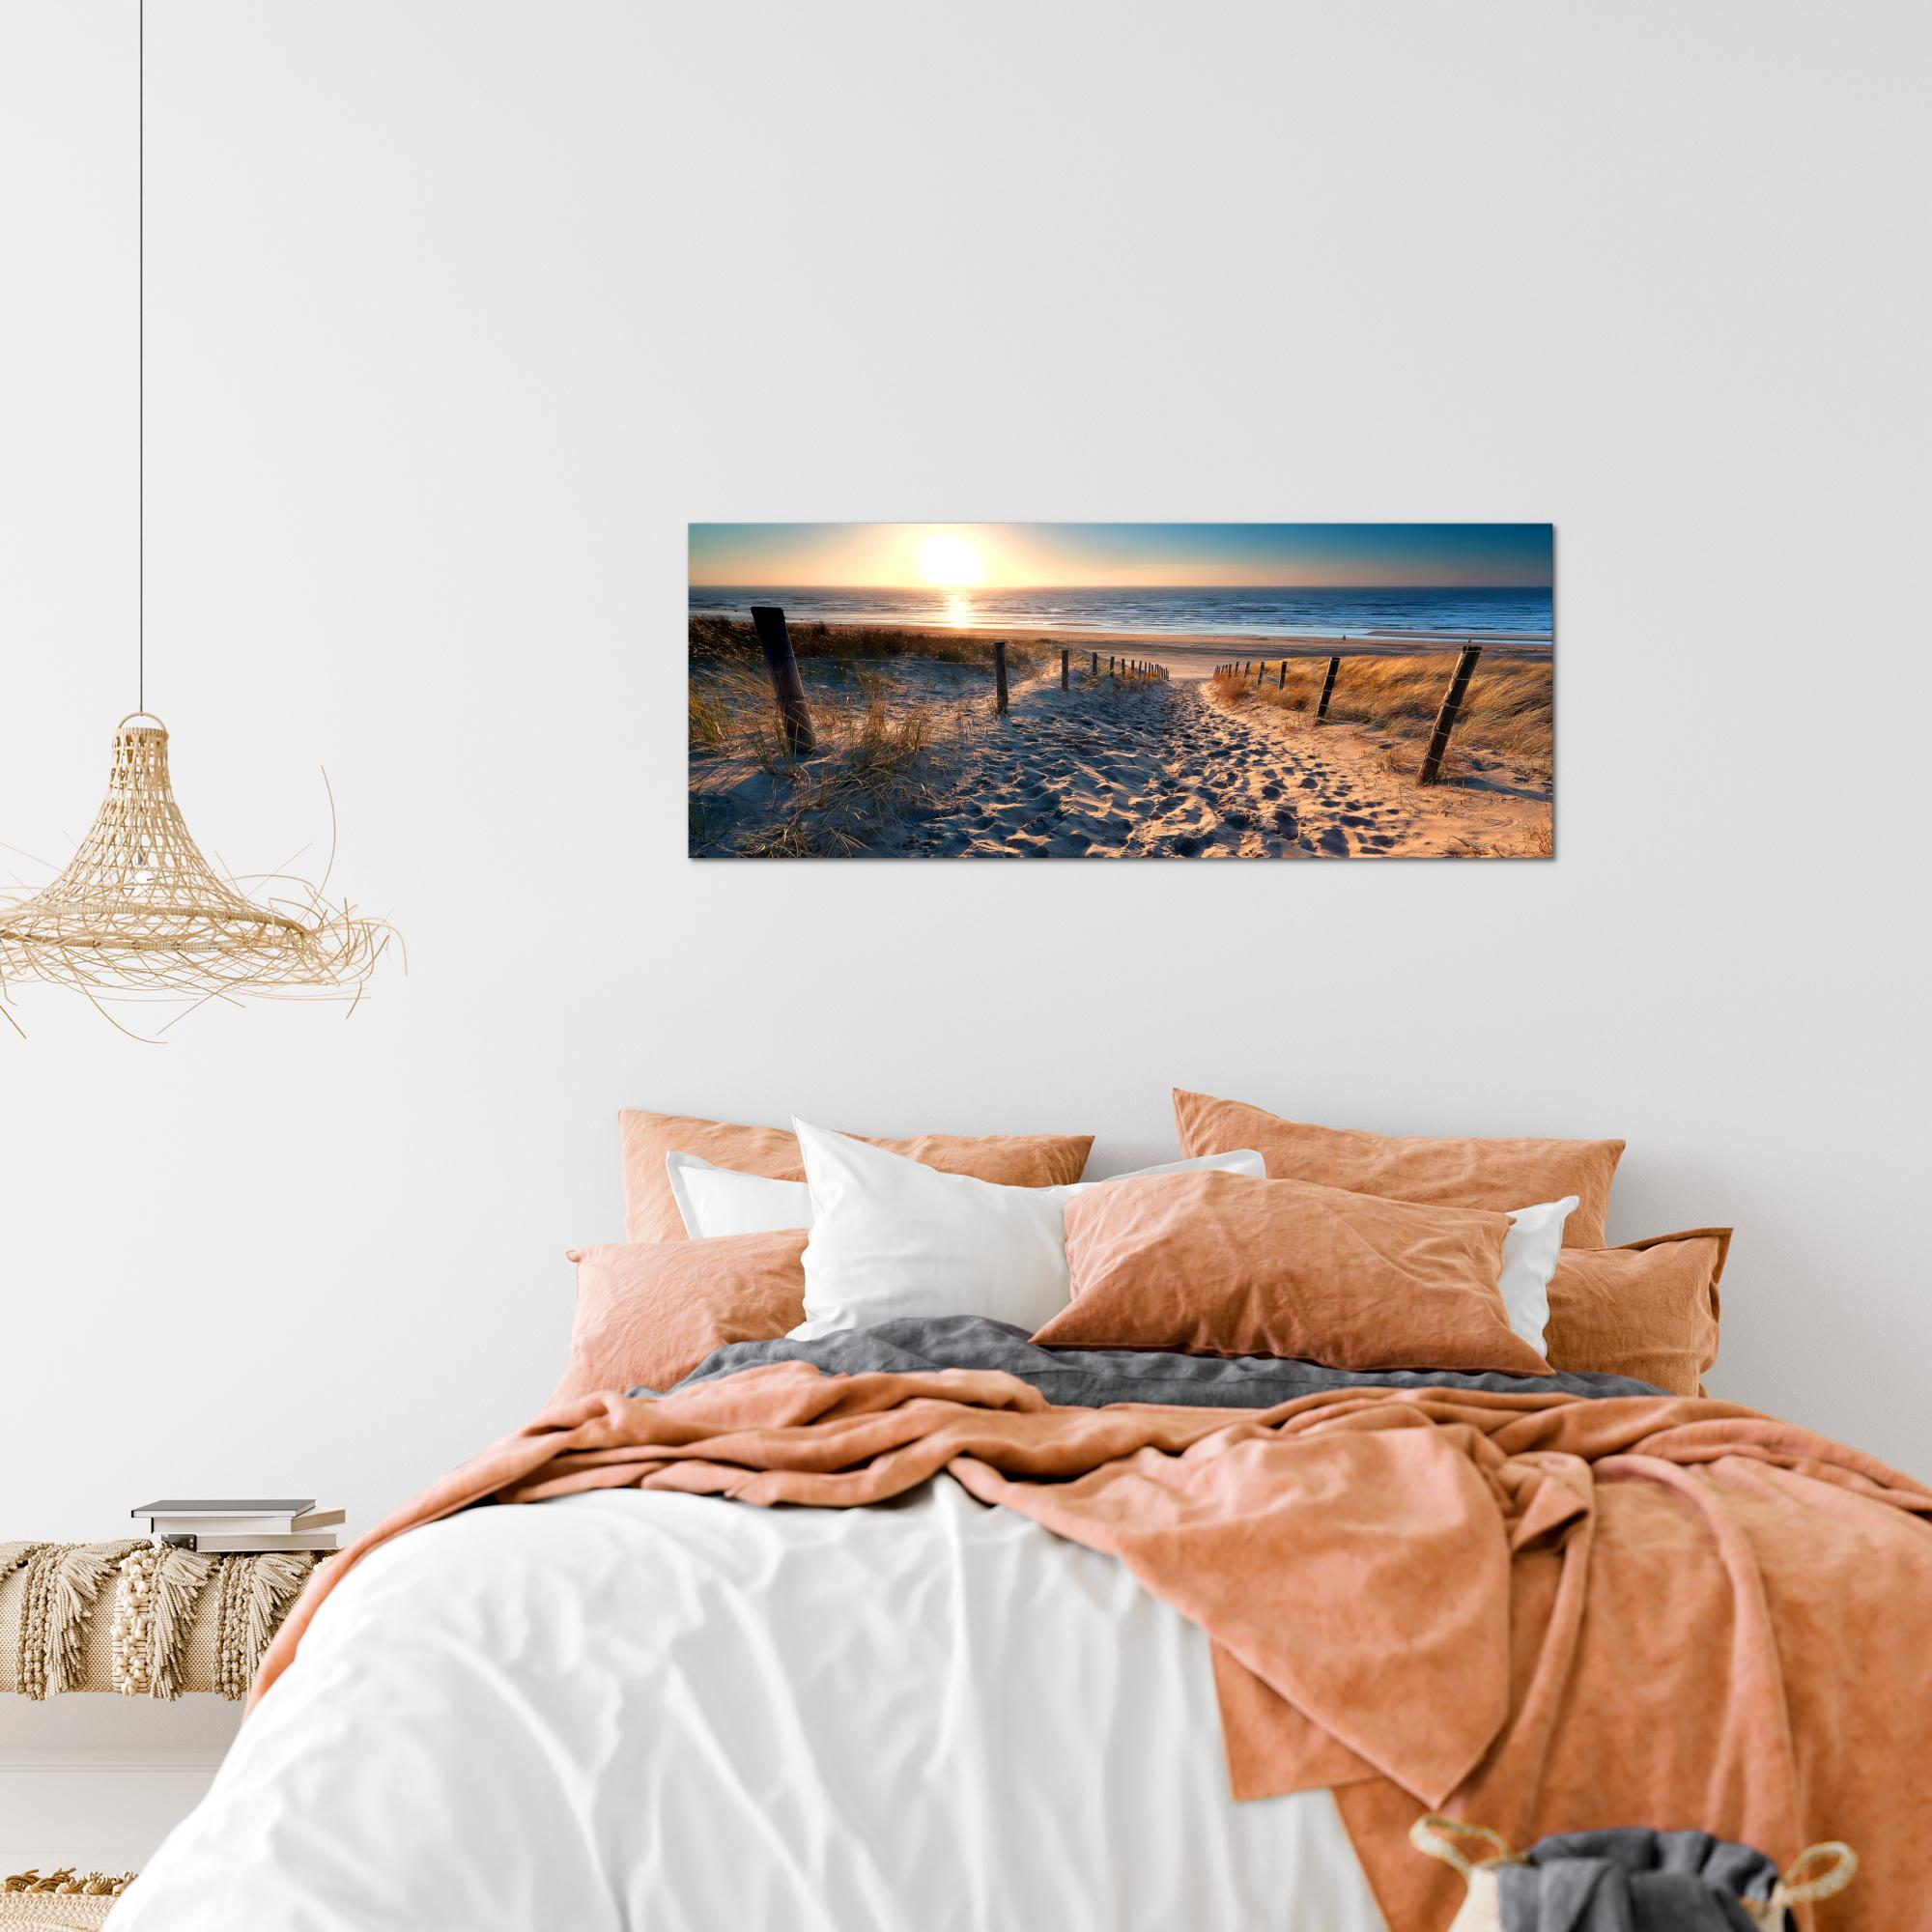 strand sonnenuntergang bild kunstdruck auf vlies leinwand xxl dekoration 018412p. Black Bedroom Furniture Sets. Home Design Ideas